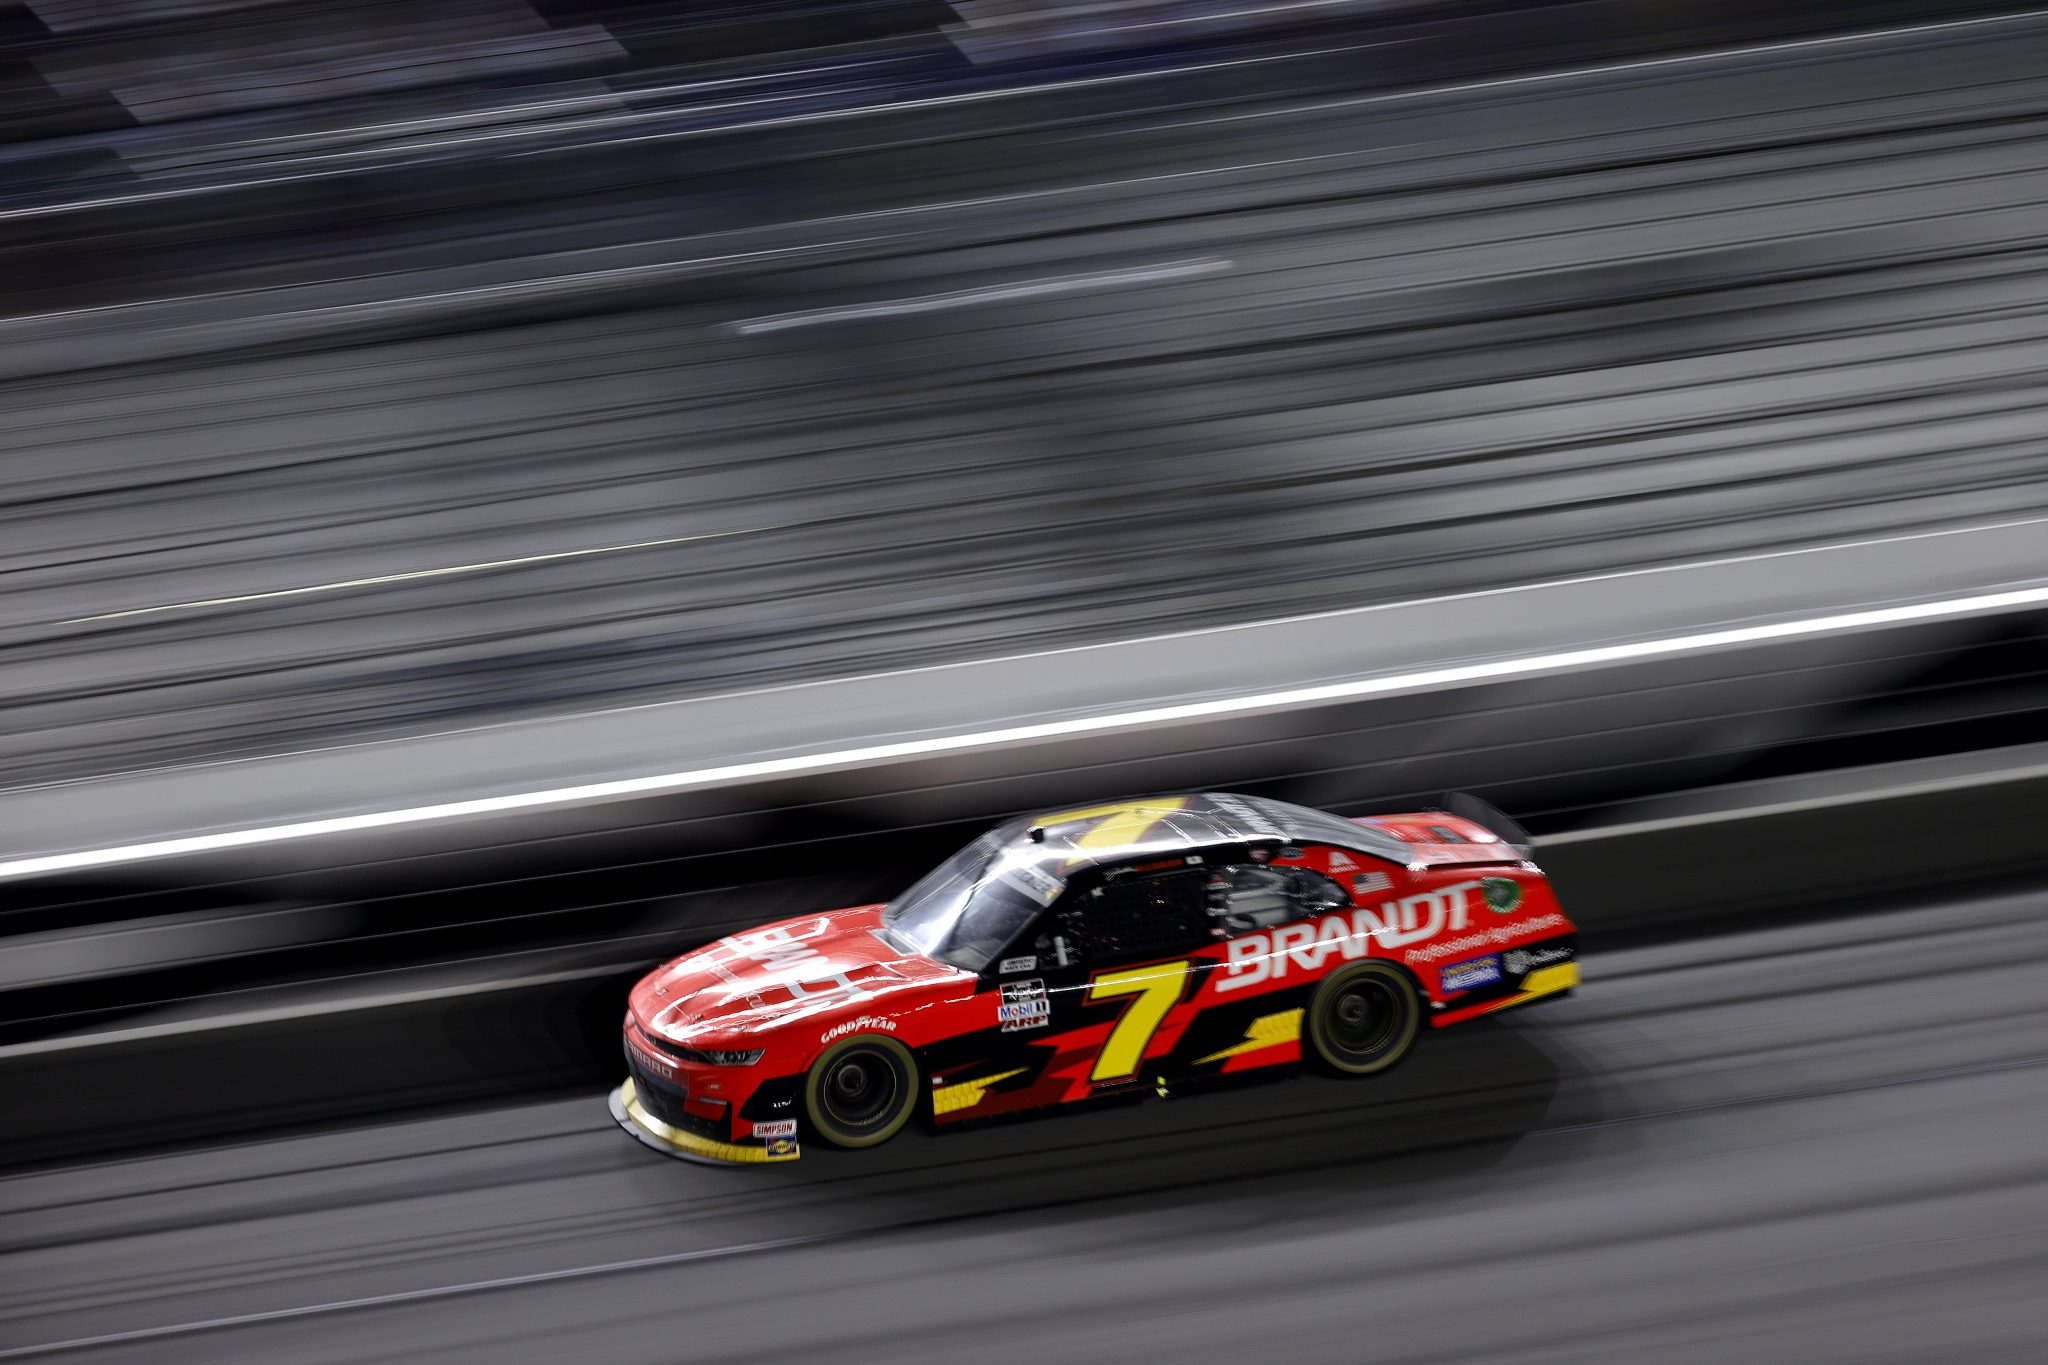 DAYTONA BEACH, FLORIDA - FEBRUARY 13: Justin Allgaier, driver of the #7 Brandt Chevrolet, drives during the NASCAR Xfinity Series Beef. It's What's For Dinner. 300 at Daytona International Speedway on February 13, 2021 in Daytona Beach, Florida. (Photo by Jared C. Tilton/Getty Images) | Getty Images